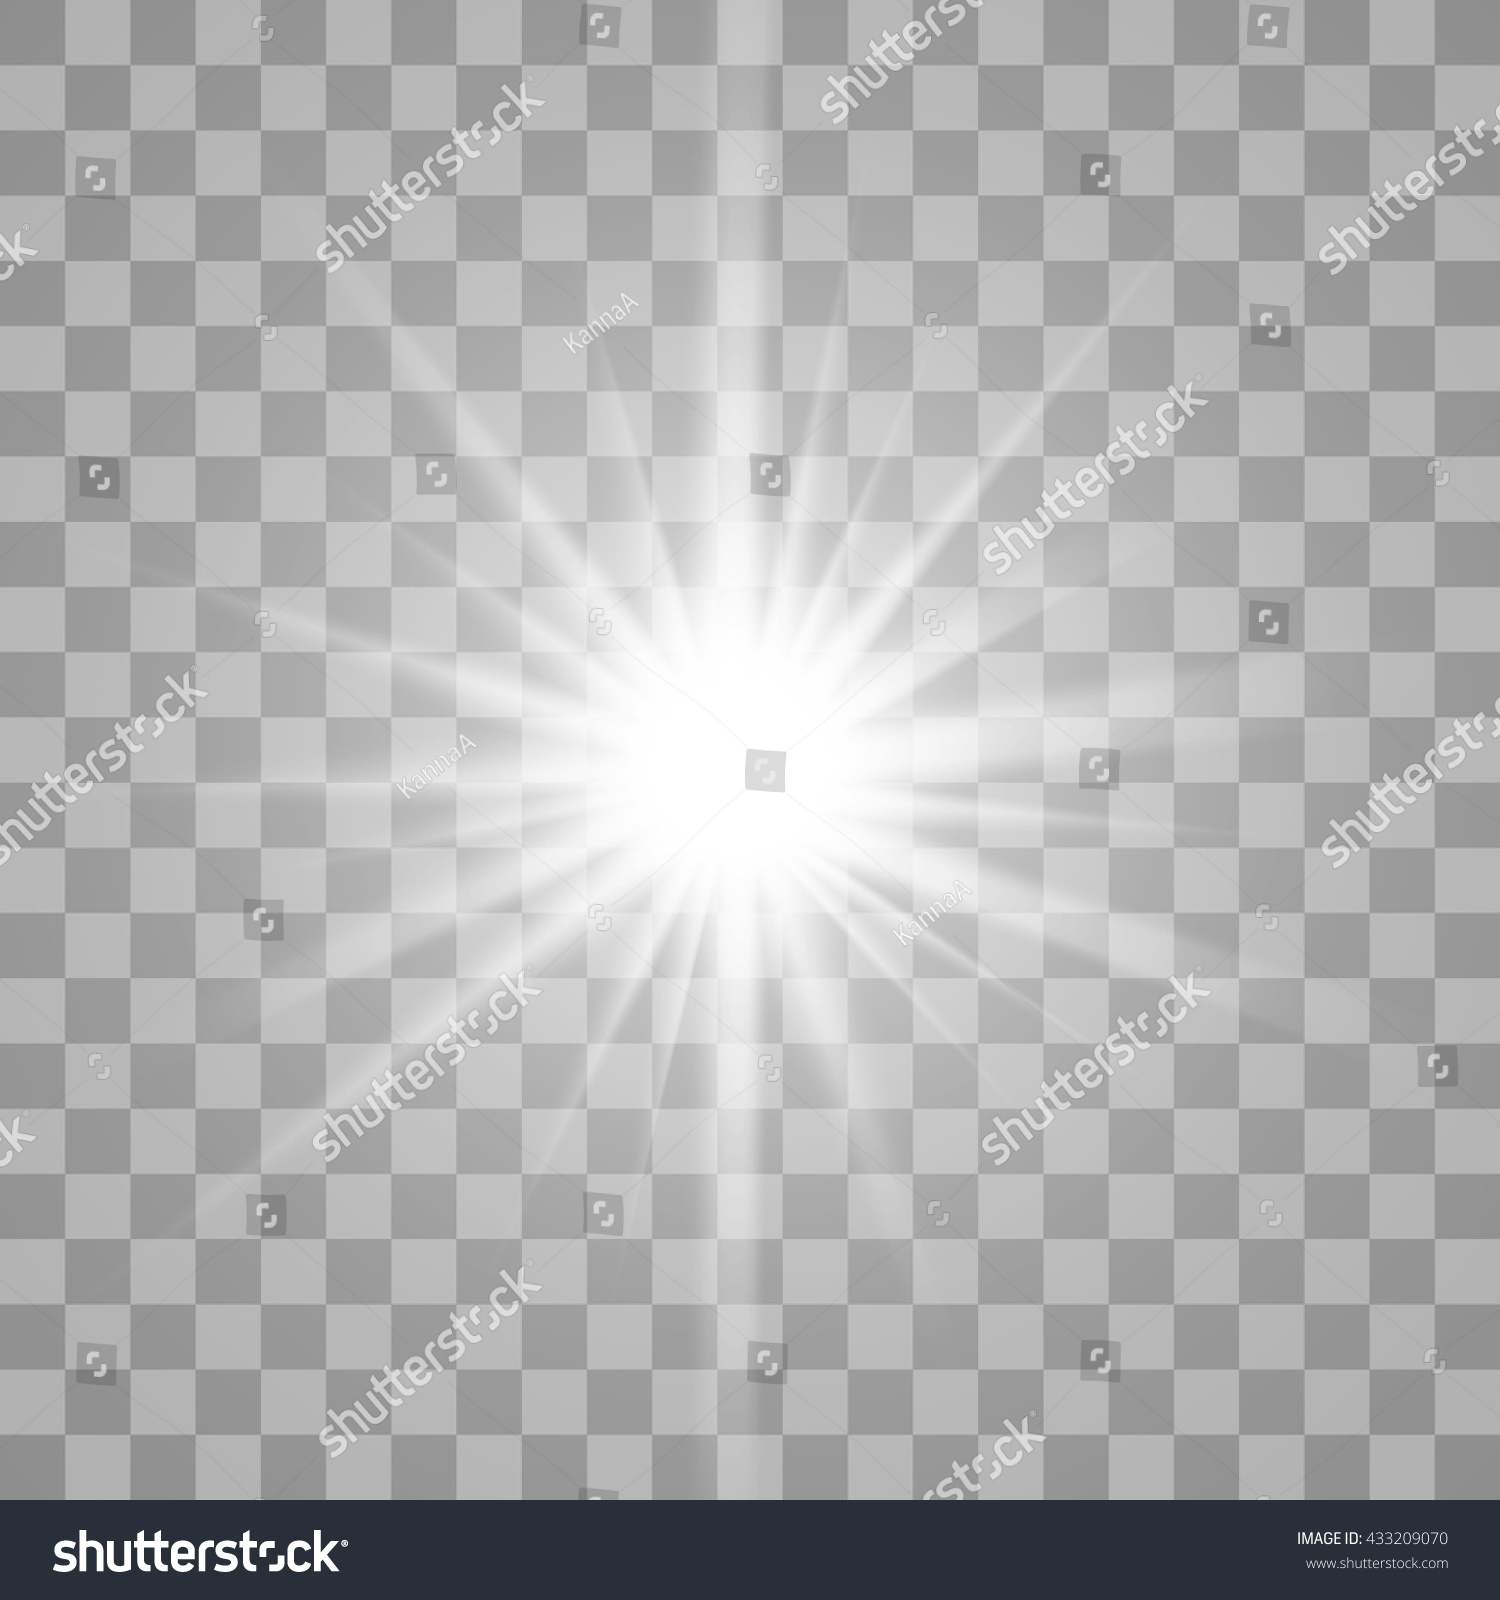 White Glowing Light Burst Explosion Transparent Stock Vector ... for Star Light Effect Png  lp4eri